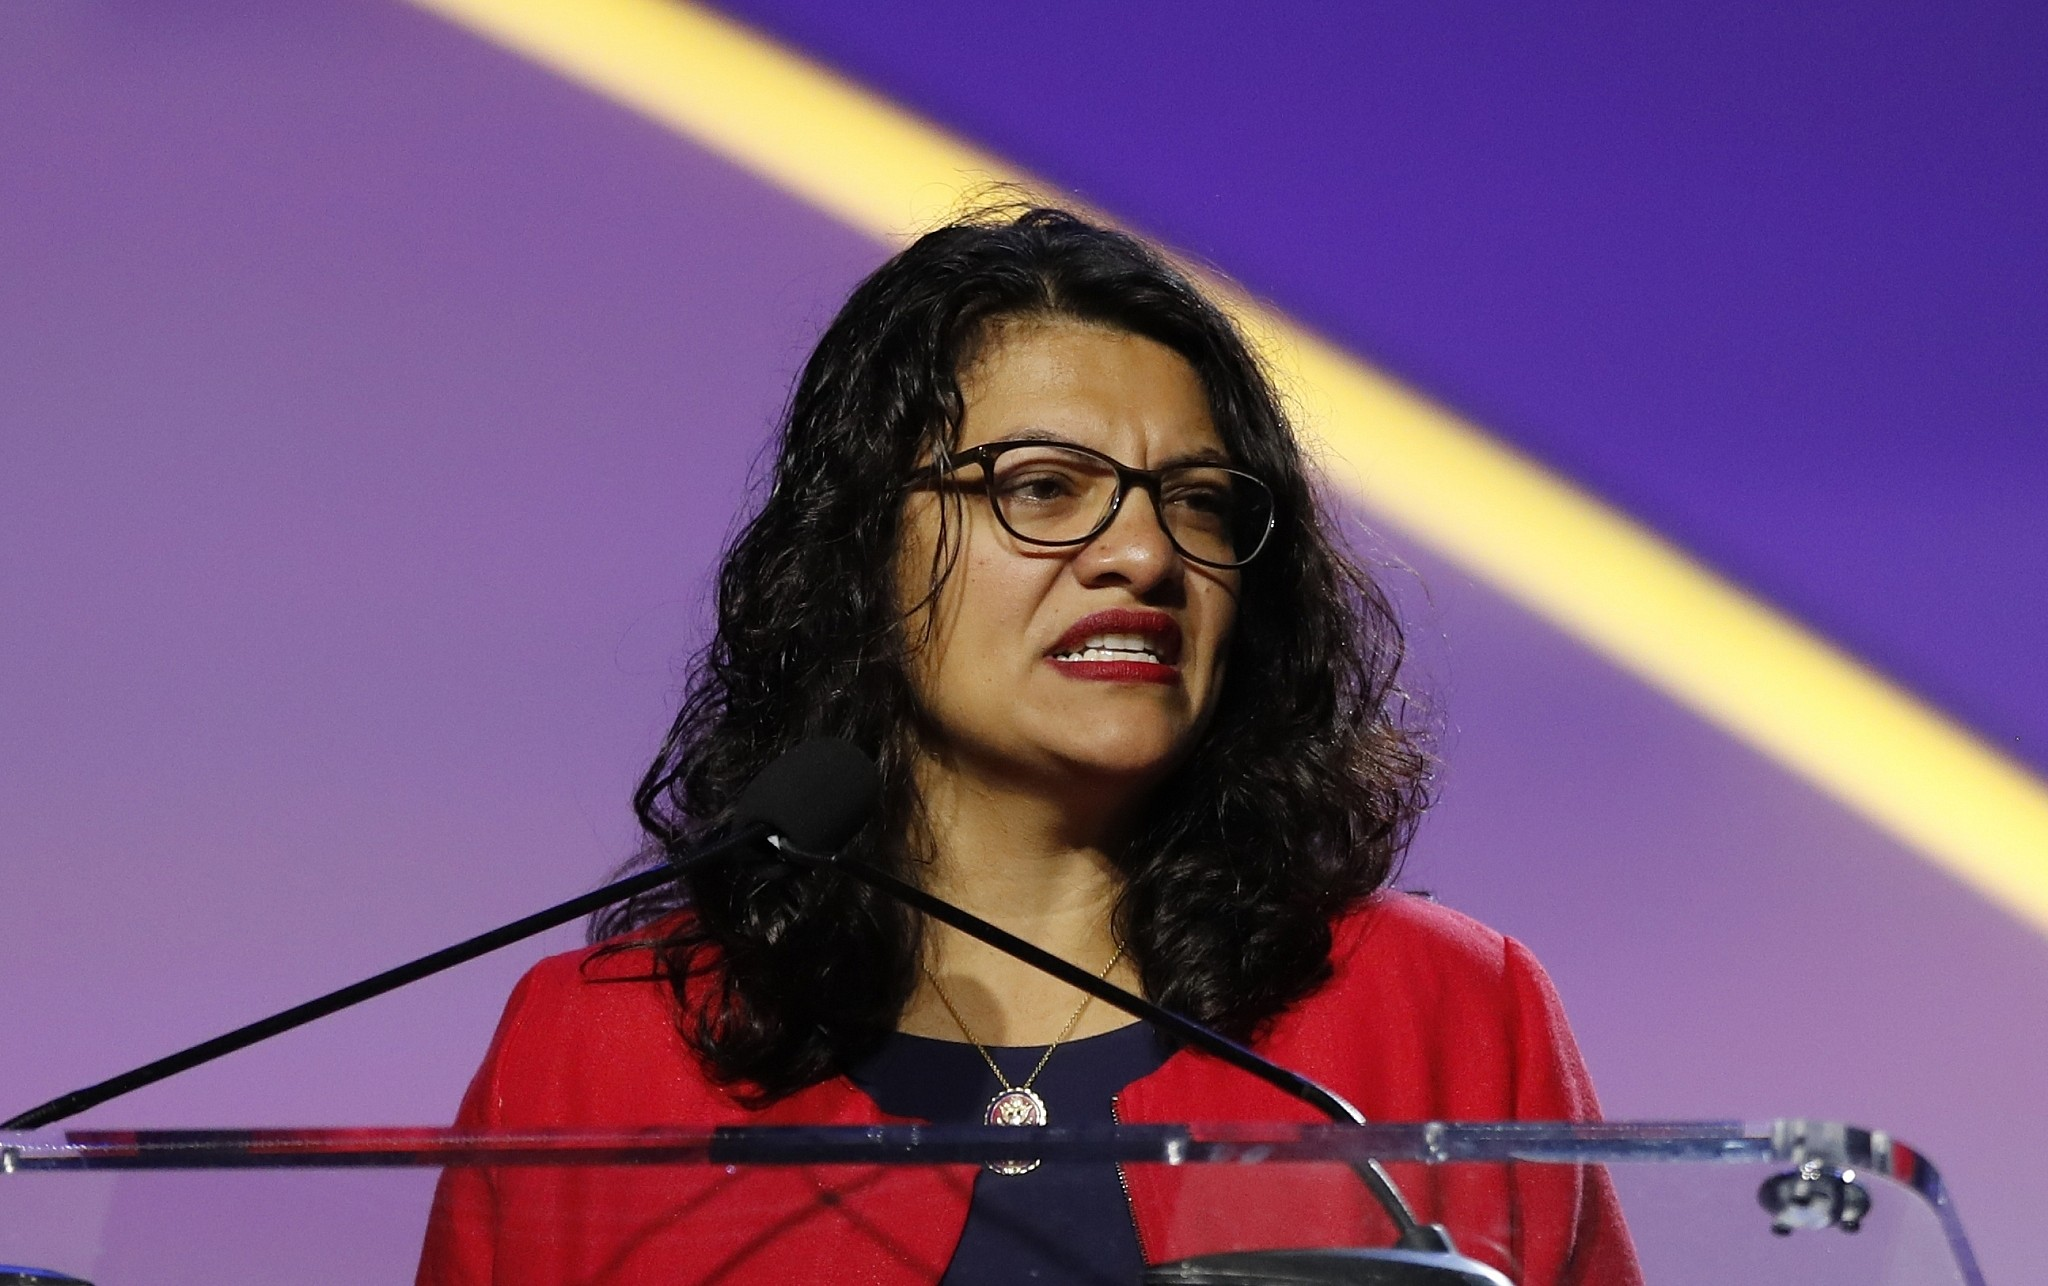 US Congresswoman Rashida Tlaib refuses Israel's offer to visit on 'humanitarian grounds'